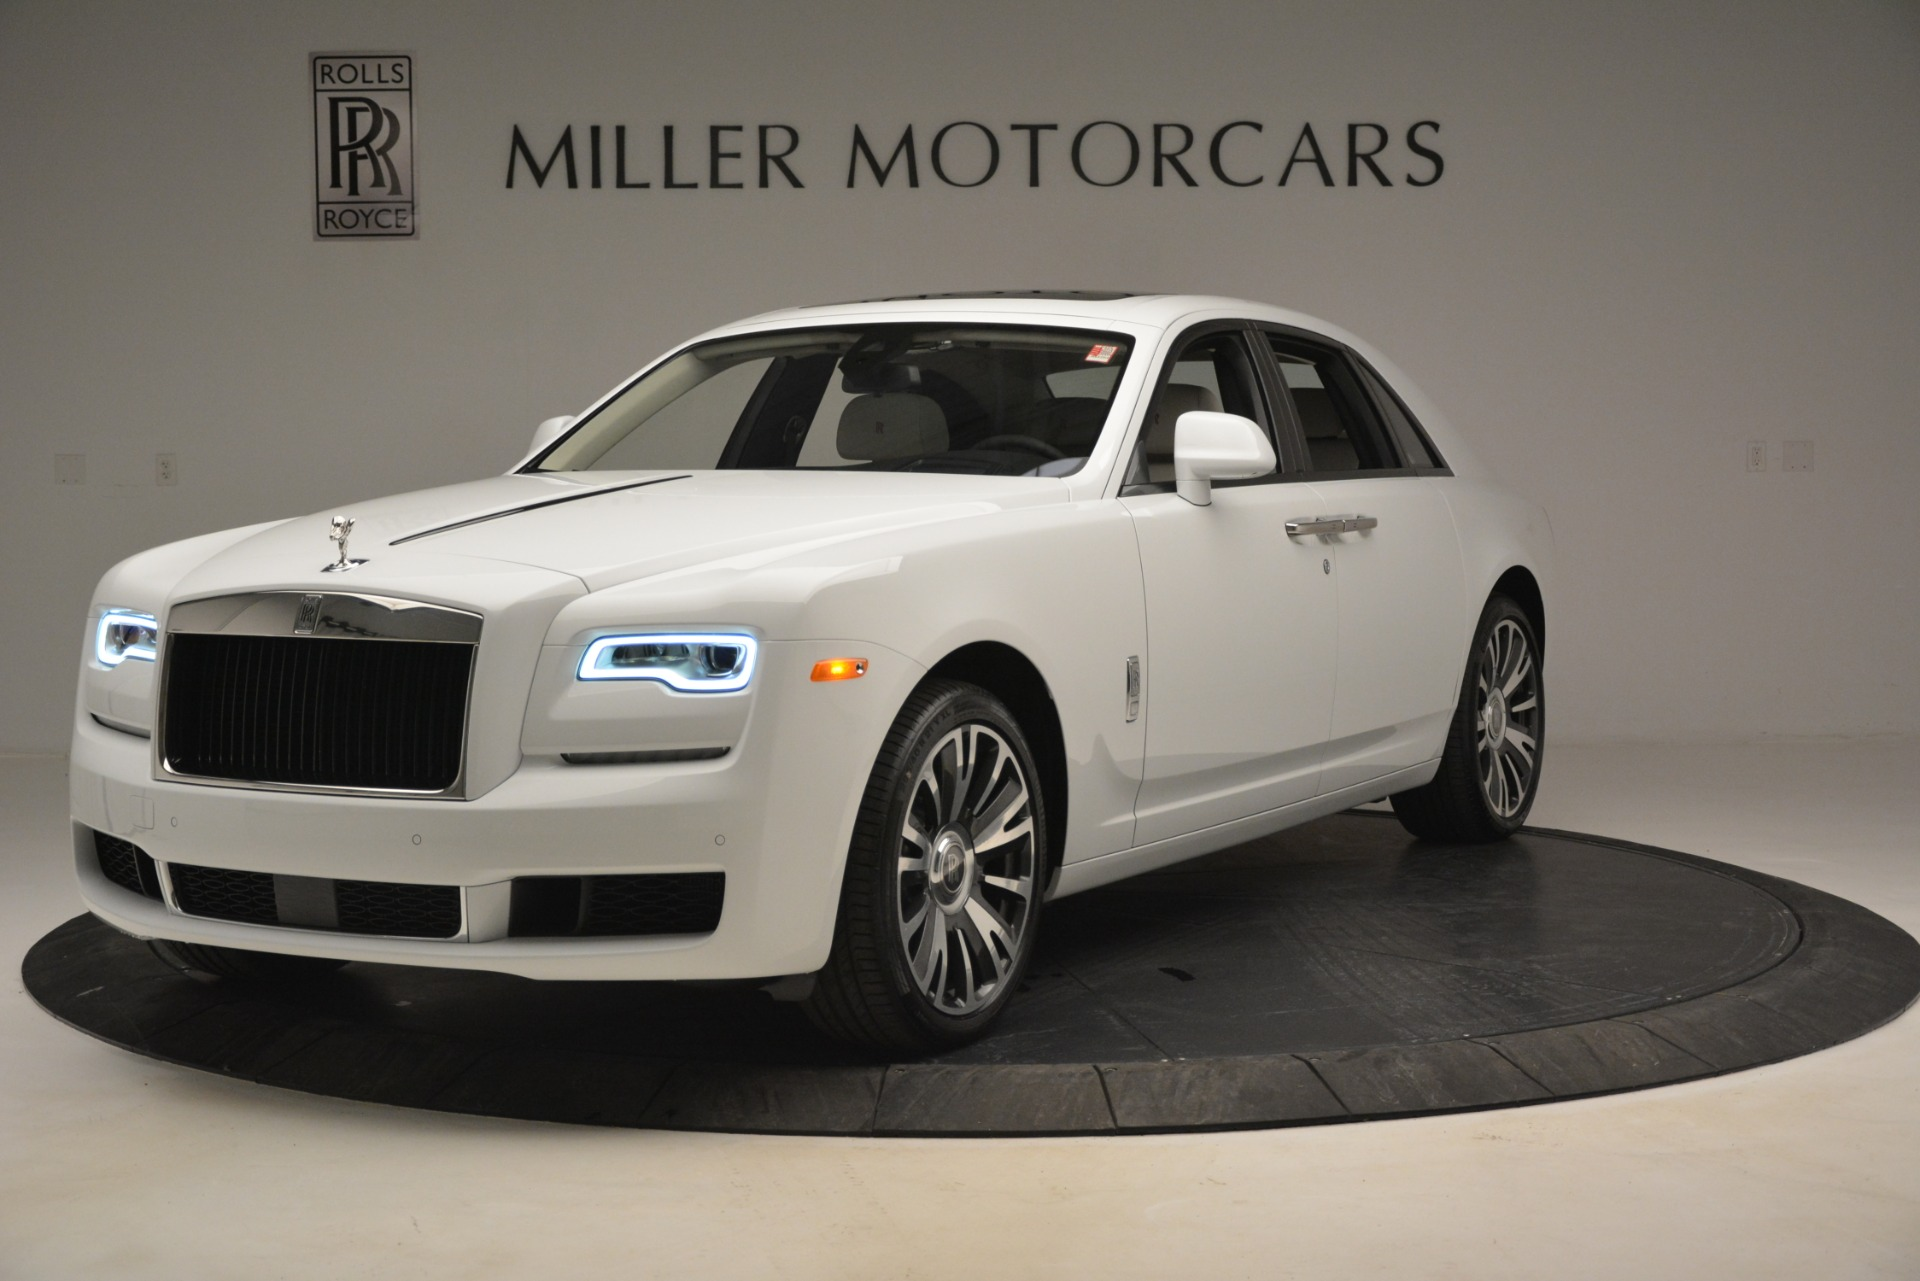 Used 2019 Rolls-Royce Ghost for sale $298,900 at Bentley Greenwich in Greenwich CT 06830 1